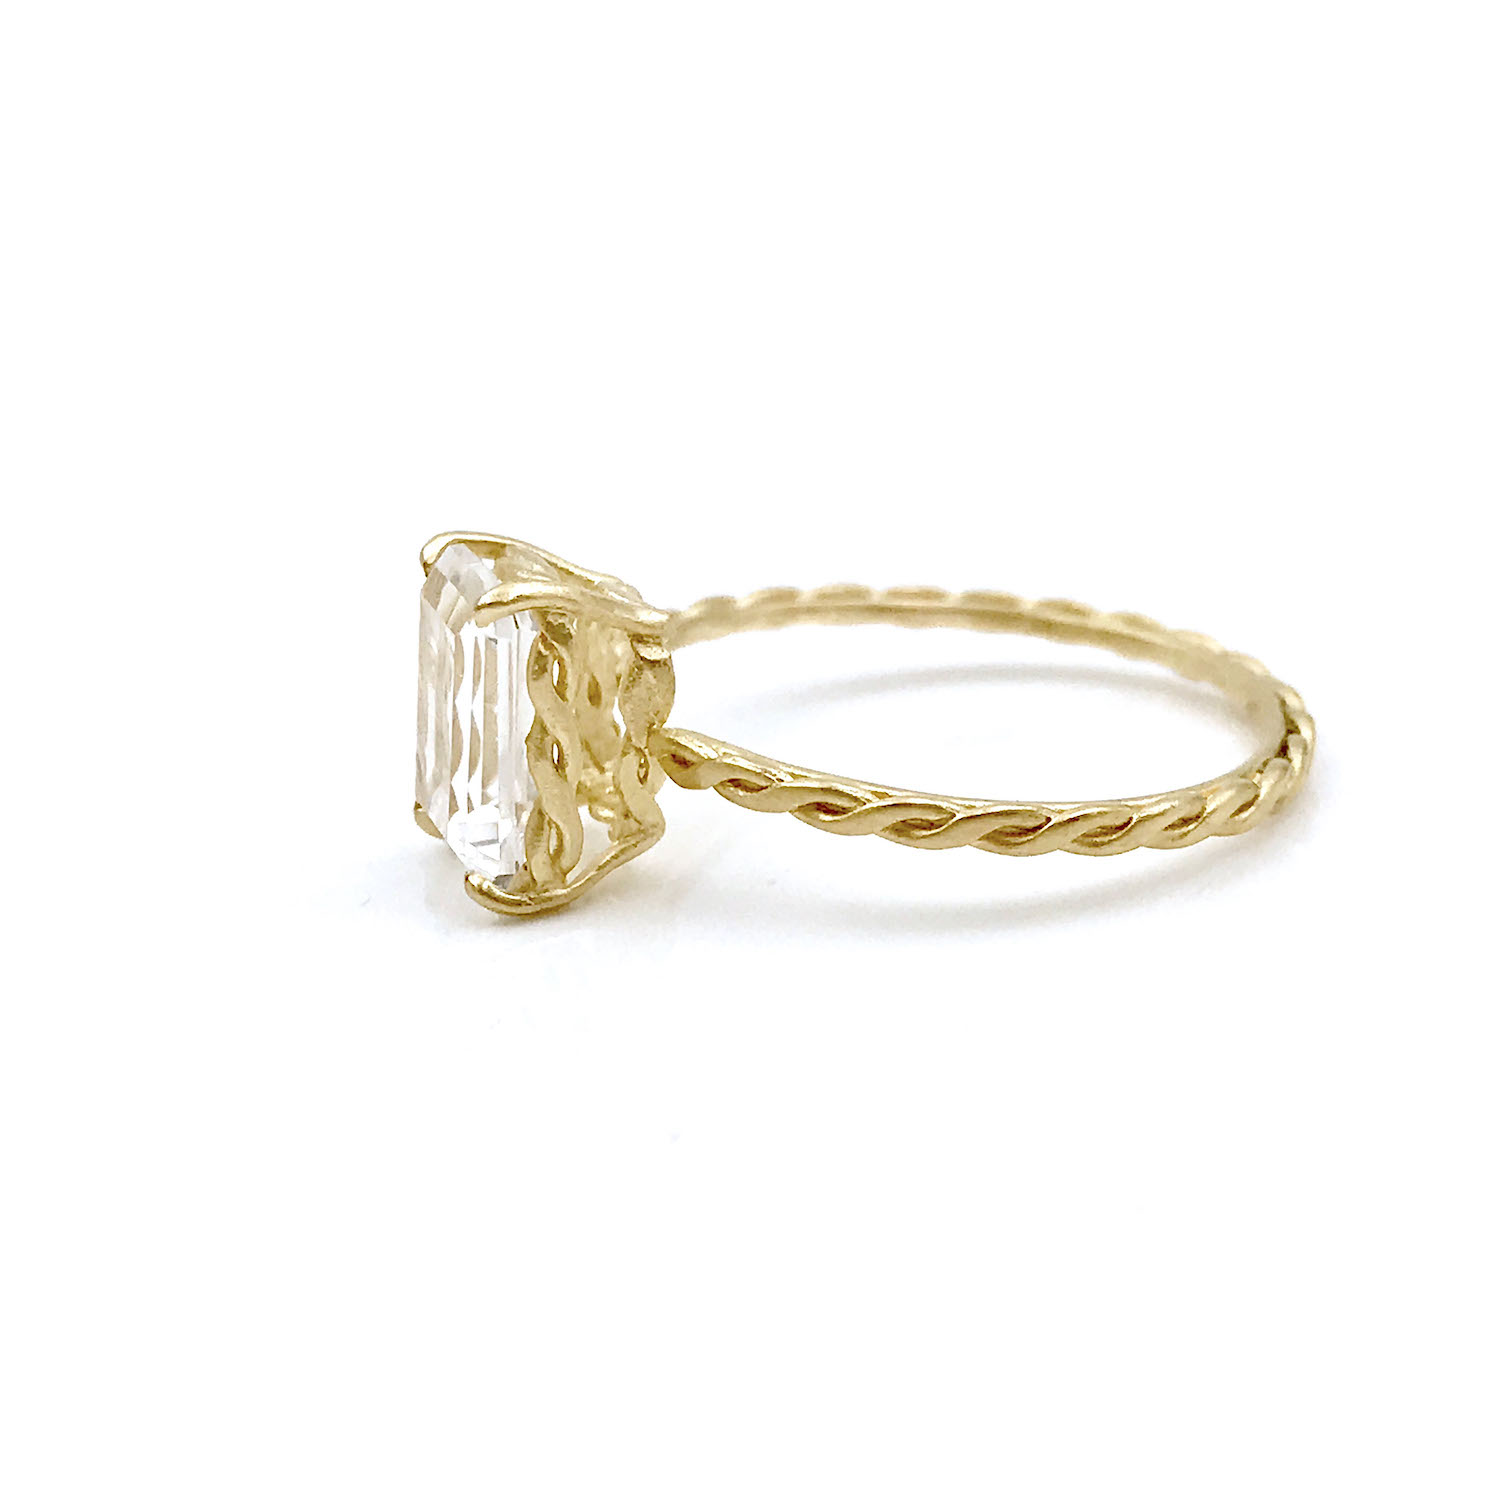 Emerald-cut clear topaz and diamond ring with signature twist setting and shank handcrafted in 14k and 18k made to order by JeweLyrie free domestic shipping_6784